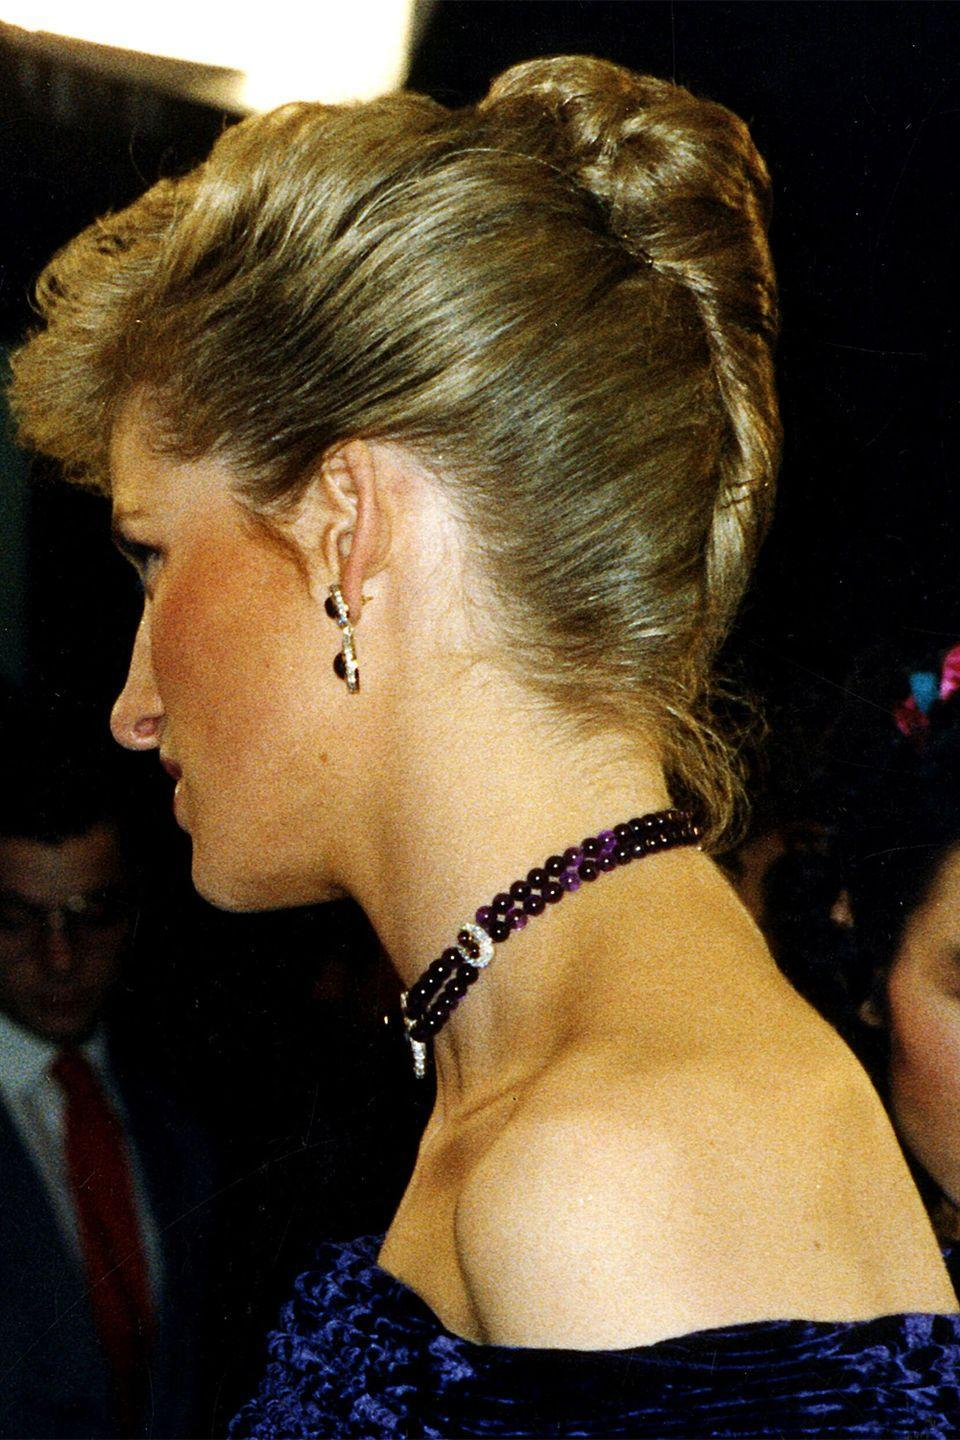 <p>In an elegant French twist updo while attending the Royal Film Performance of <em>Empire of the Sun</em>. </p>